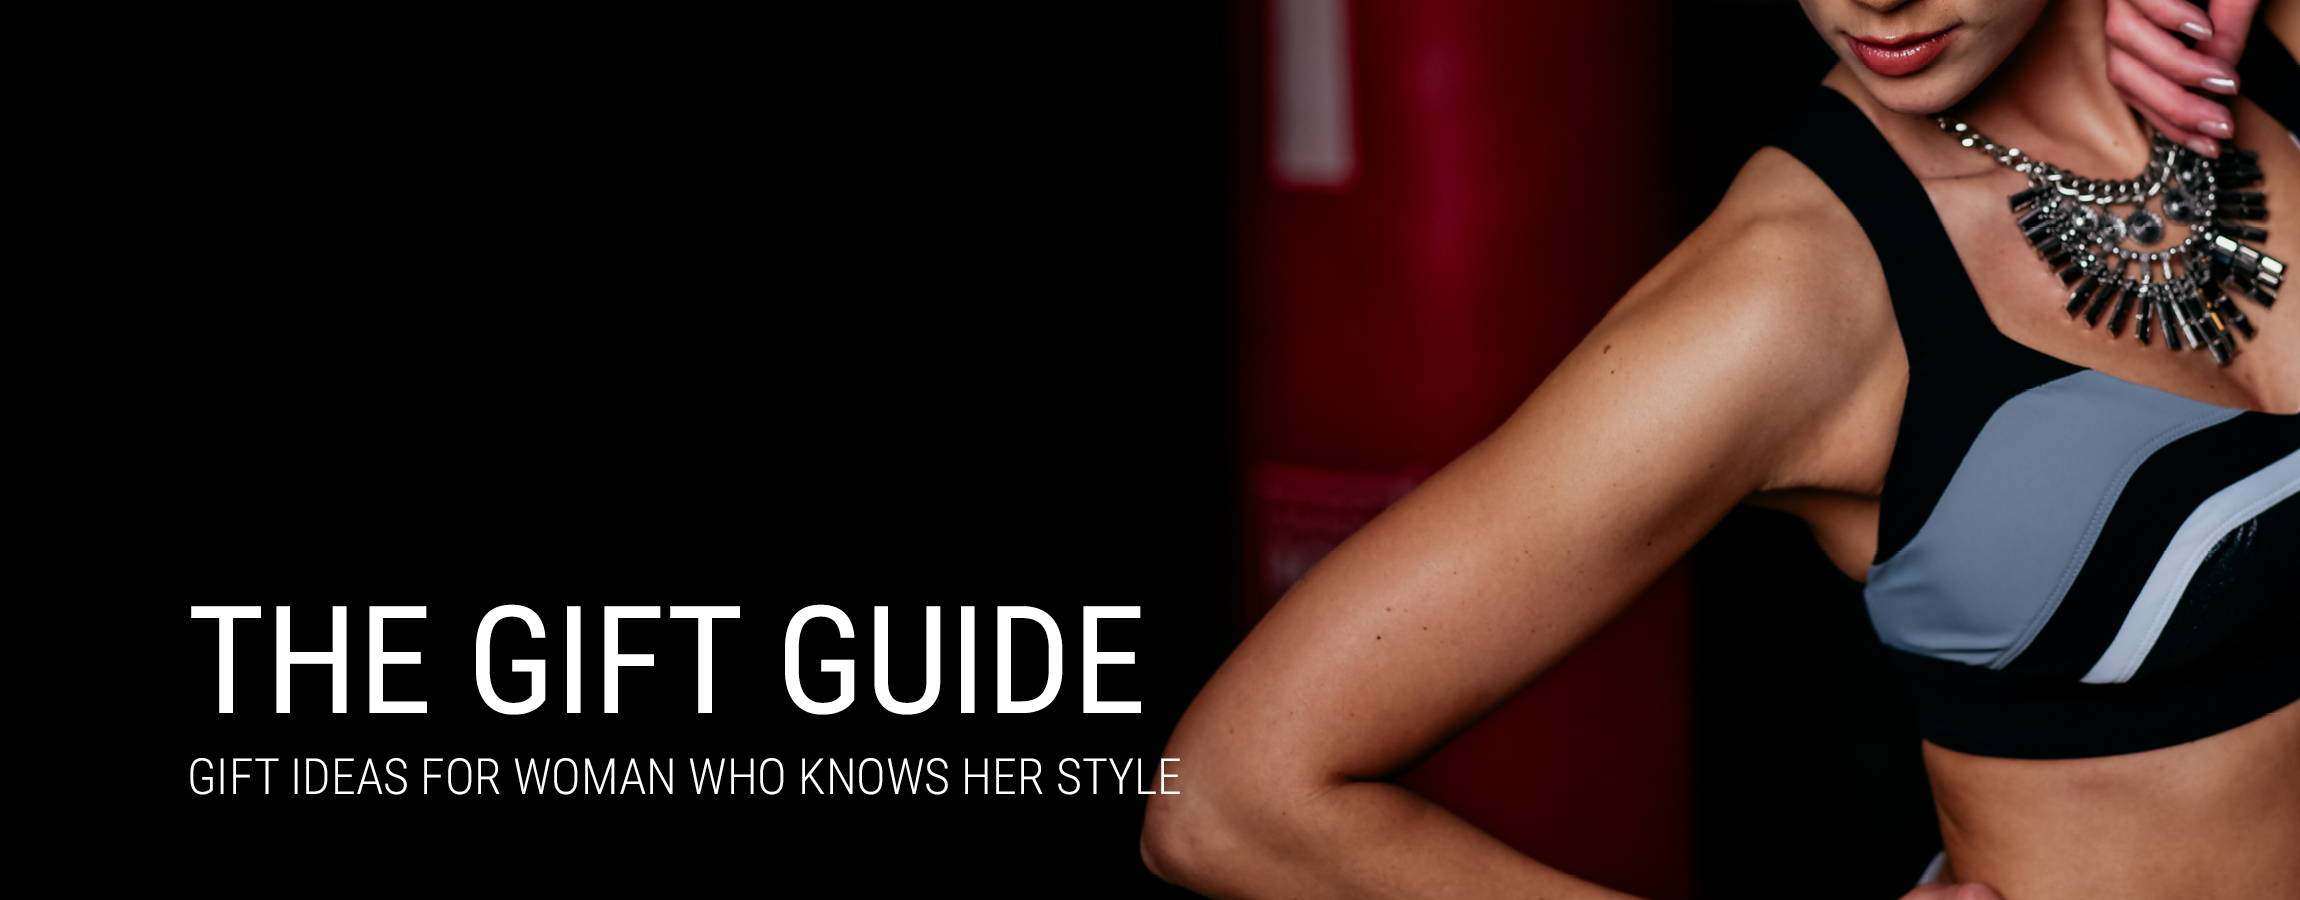 THE GIFT GUIDE ACTIVEWEAR